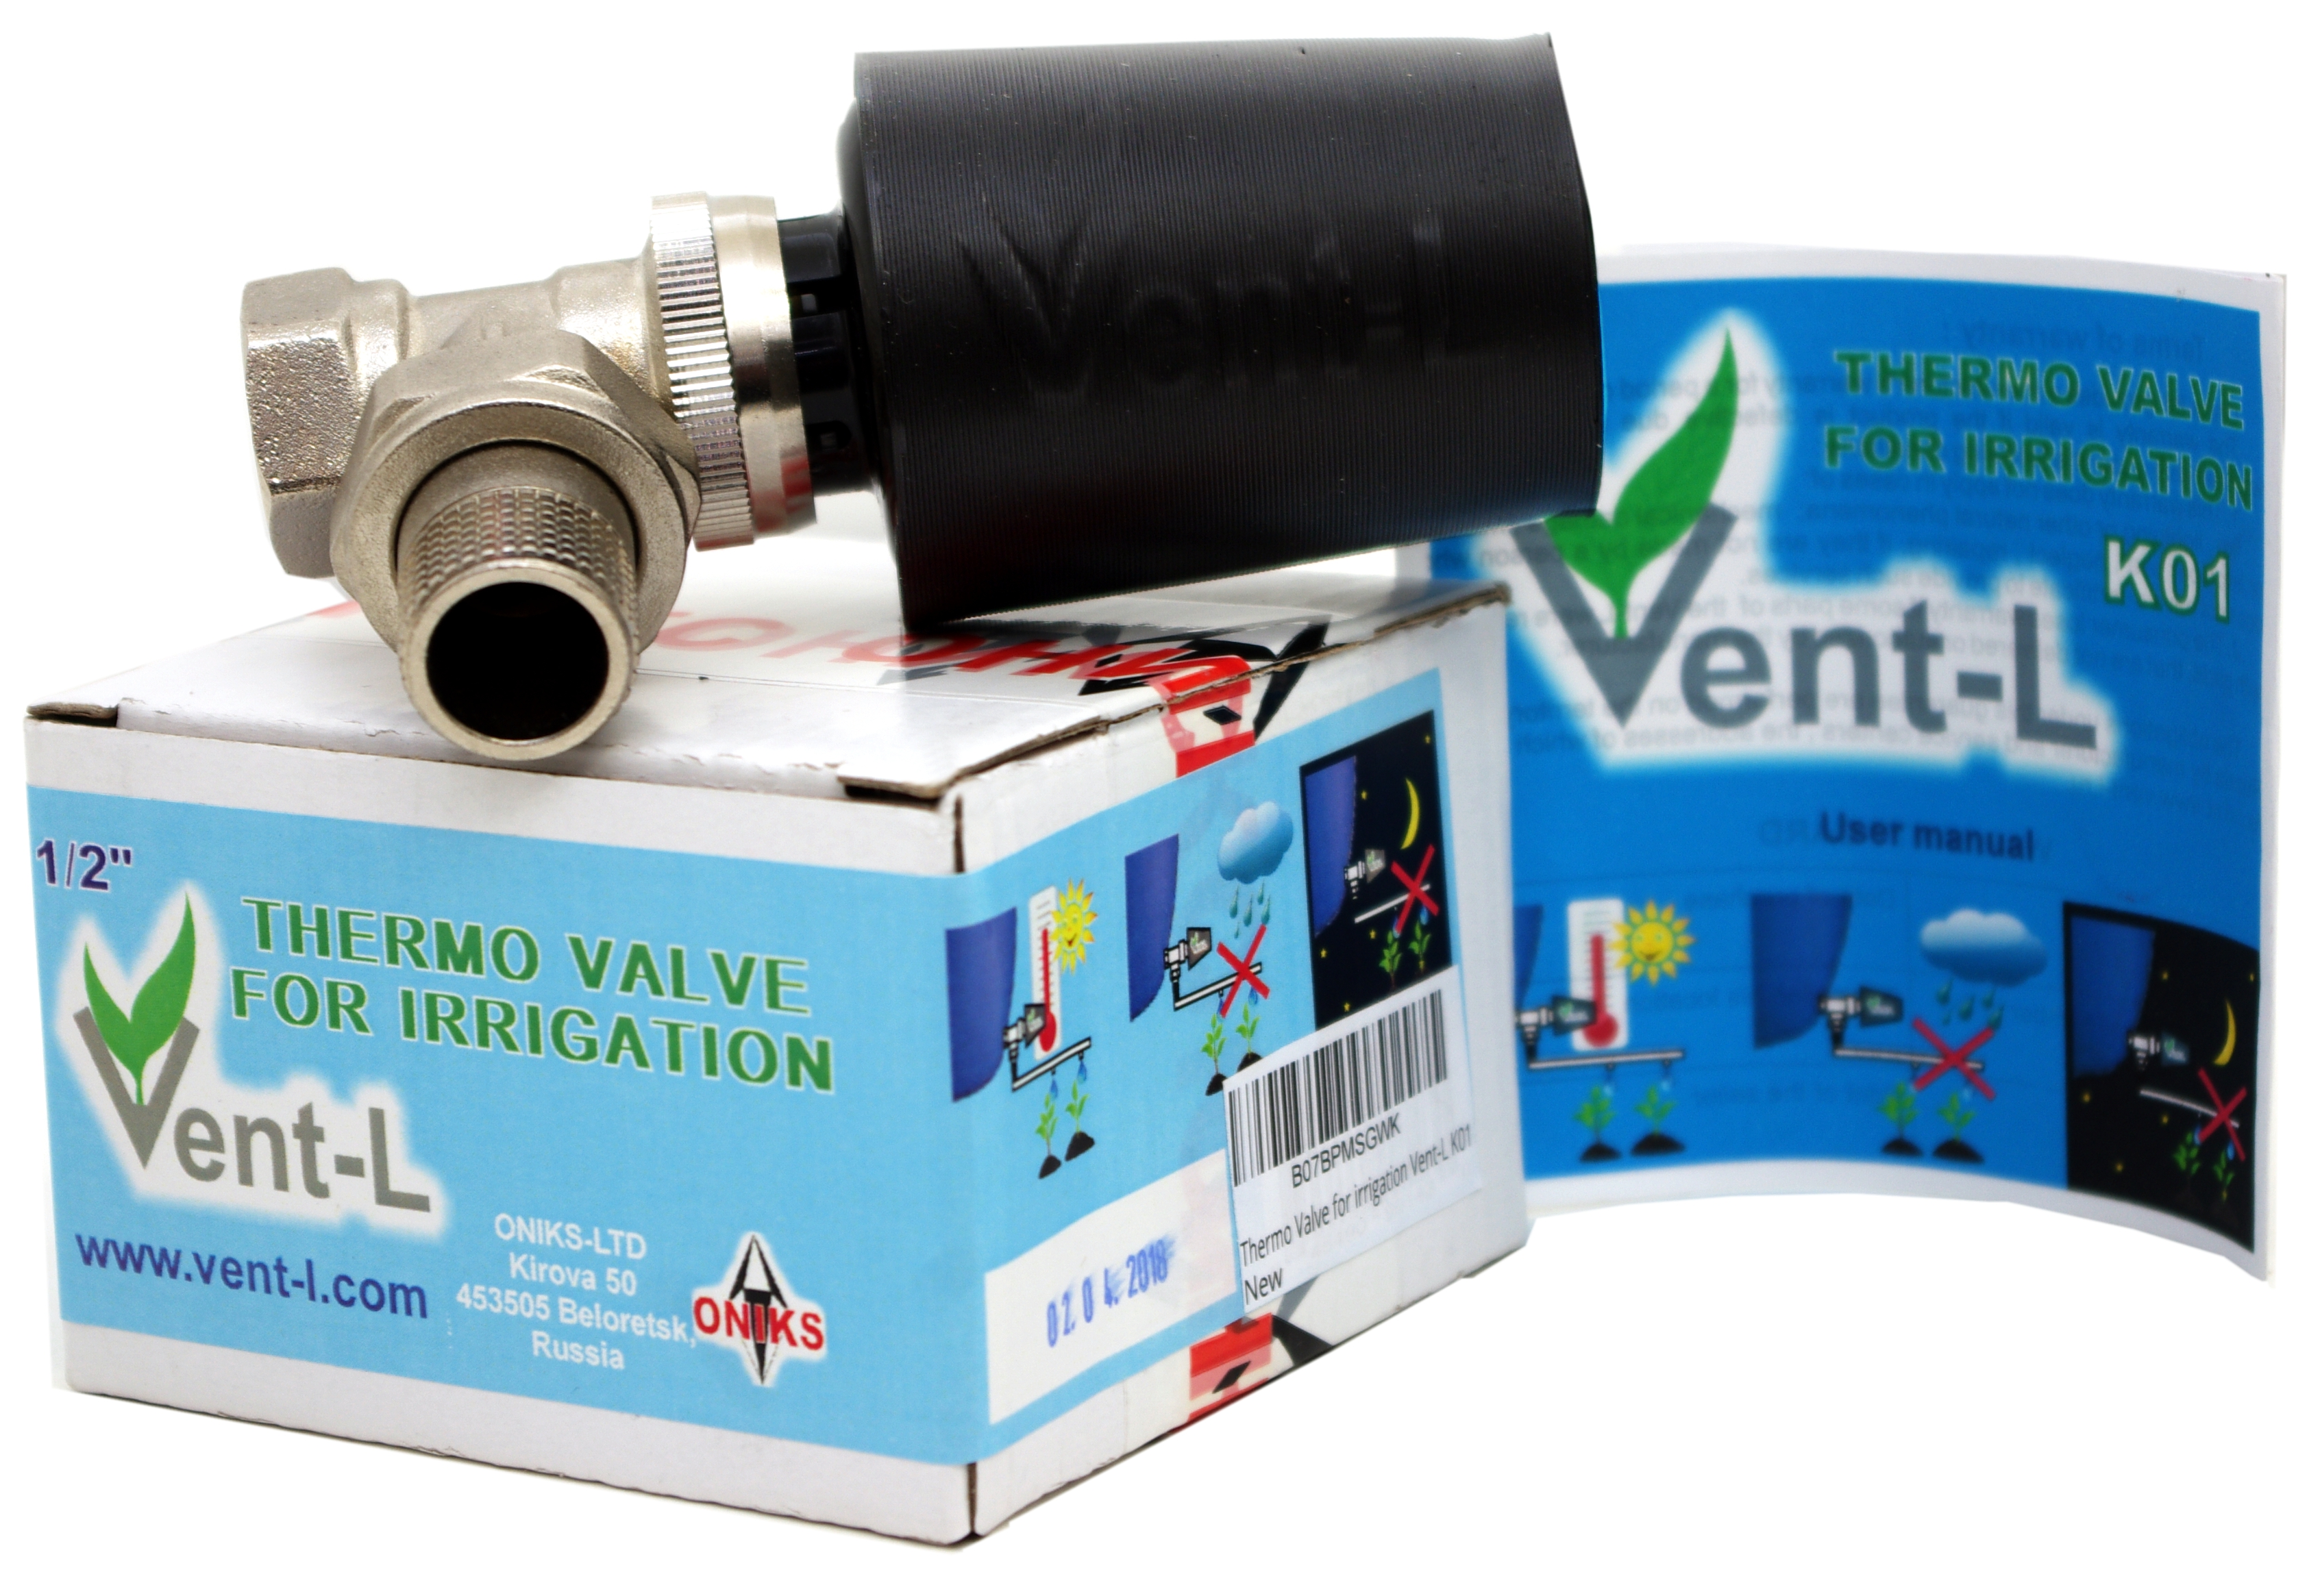 "Vent-L Thermo Valve for Irrigation K01, 1/2"" Opening Adjustment from 50-82°F"